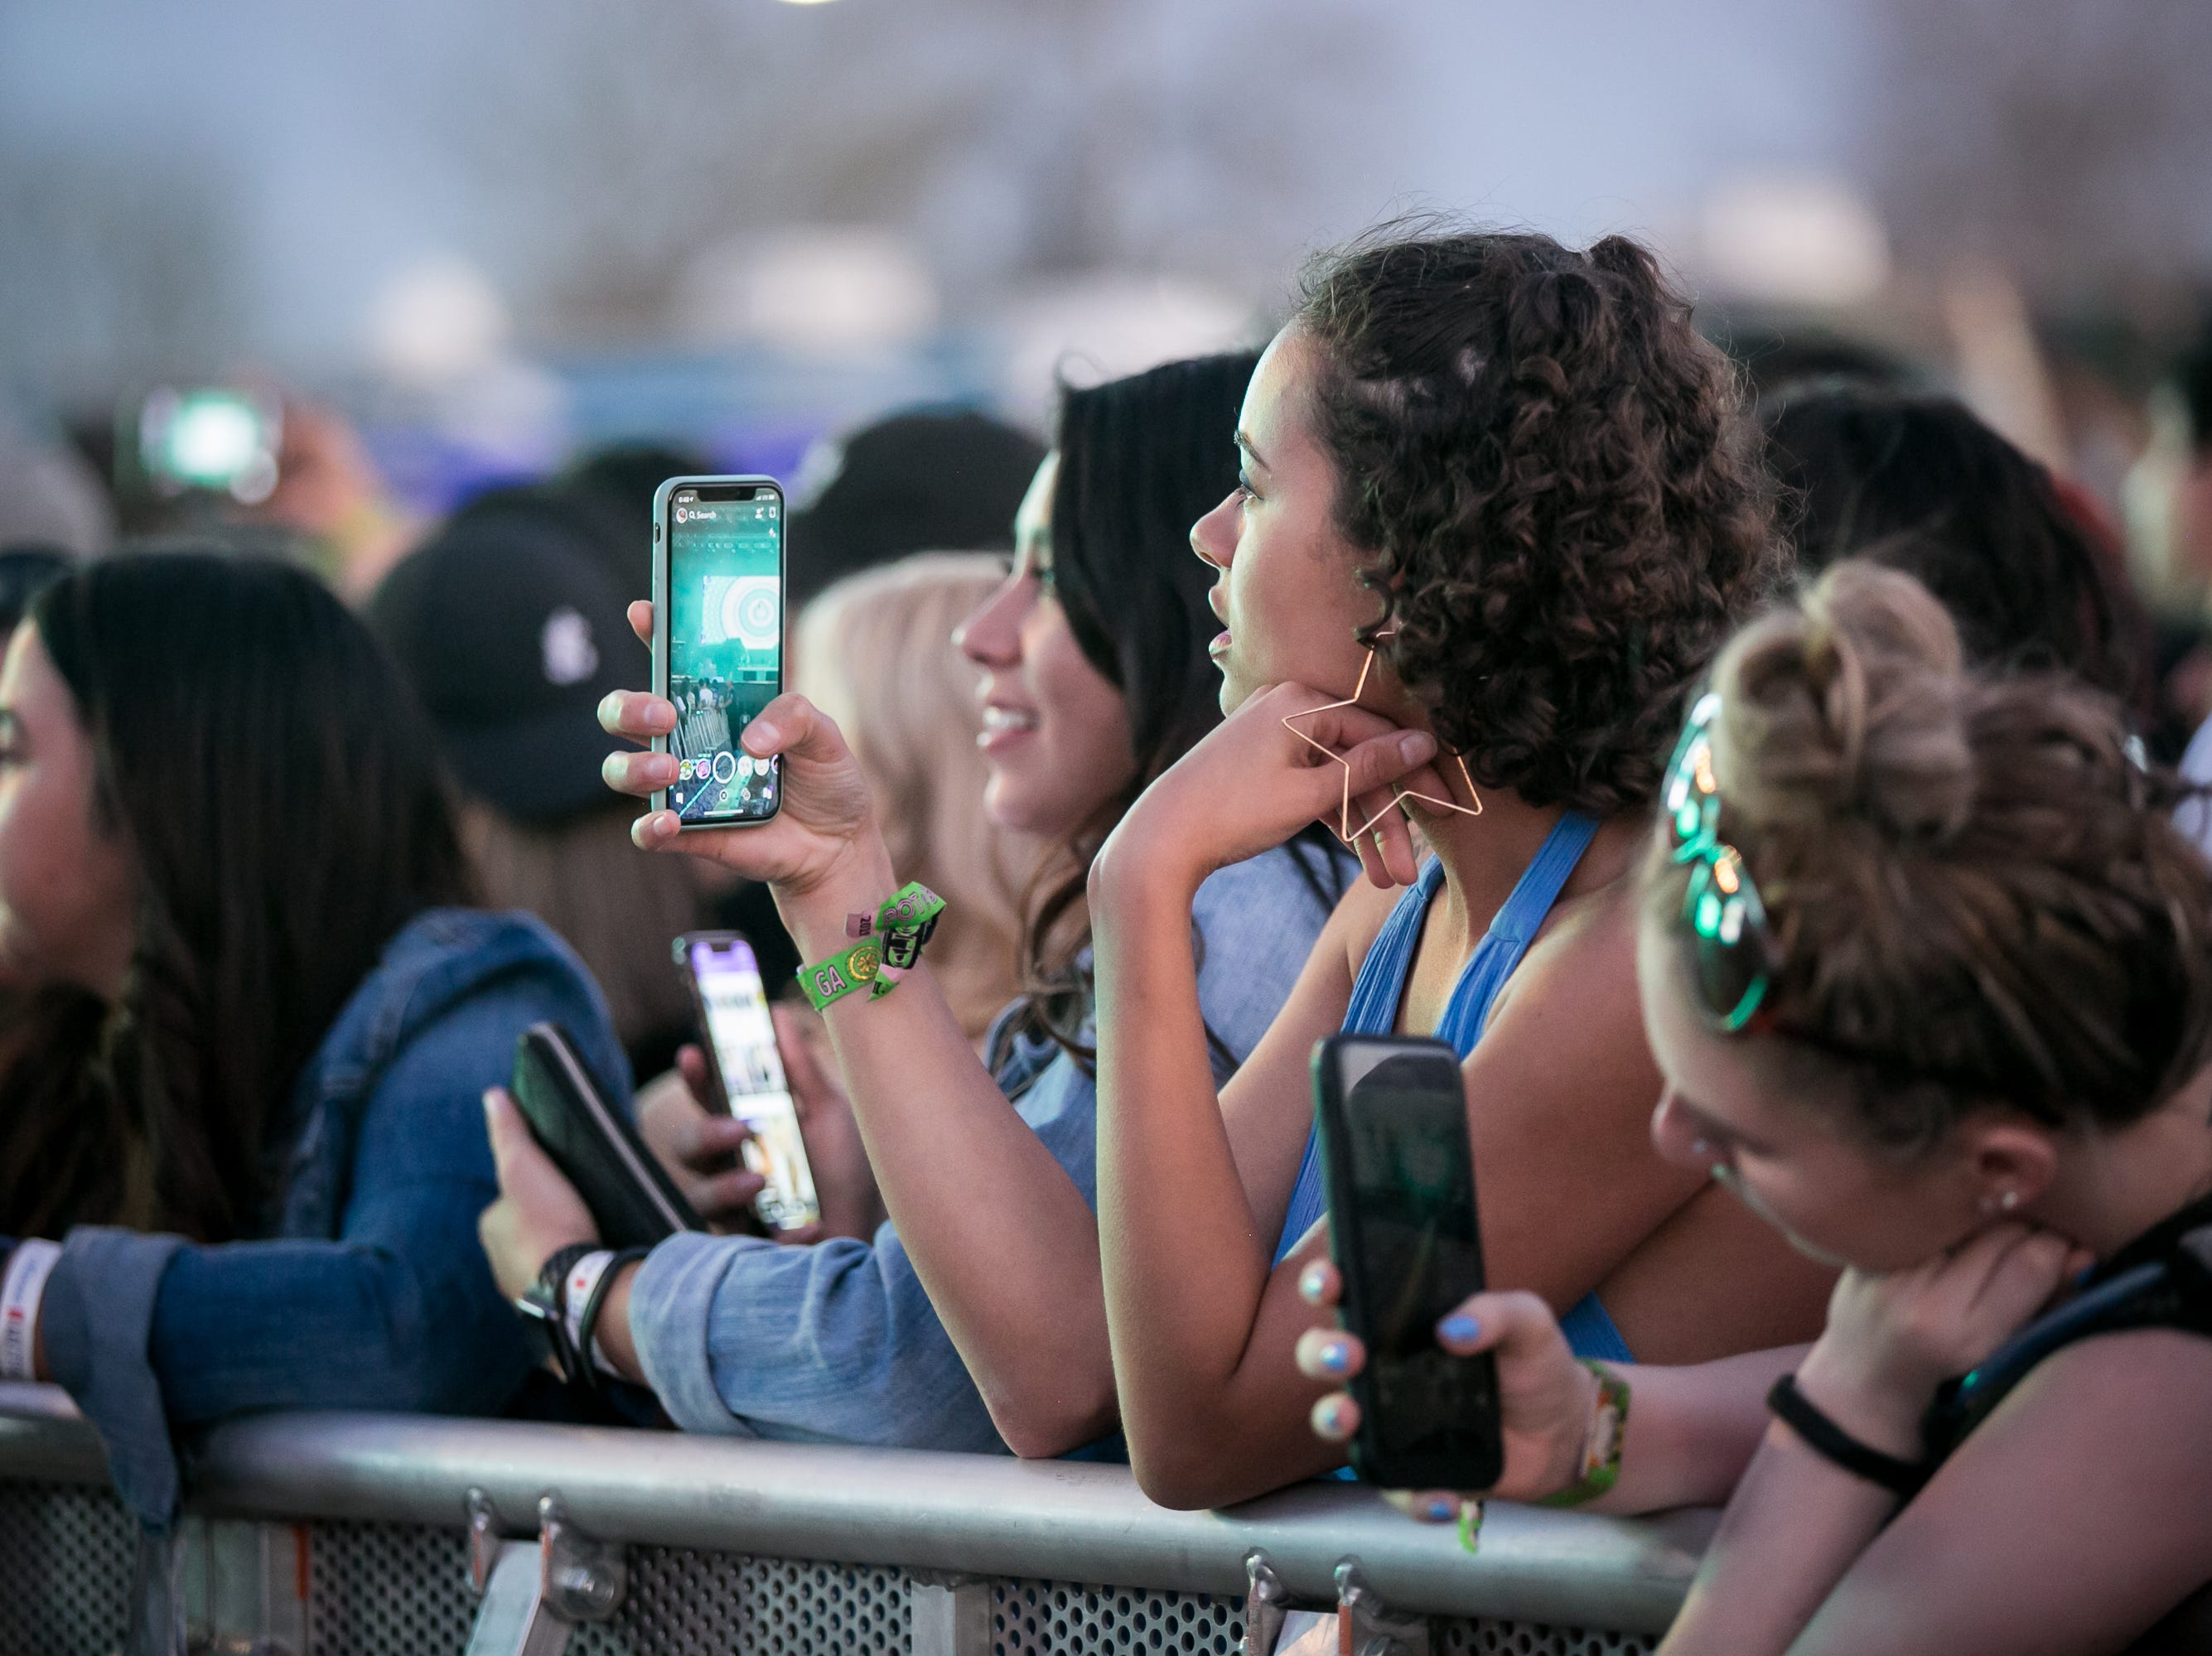 Fans eagerly await the start of Jhene Aiko's set during Pot of Gold Music Festival at Steele Indian School Park on March 16, 2019.